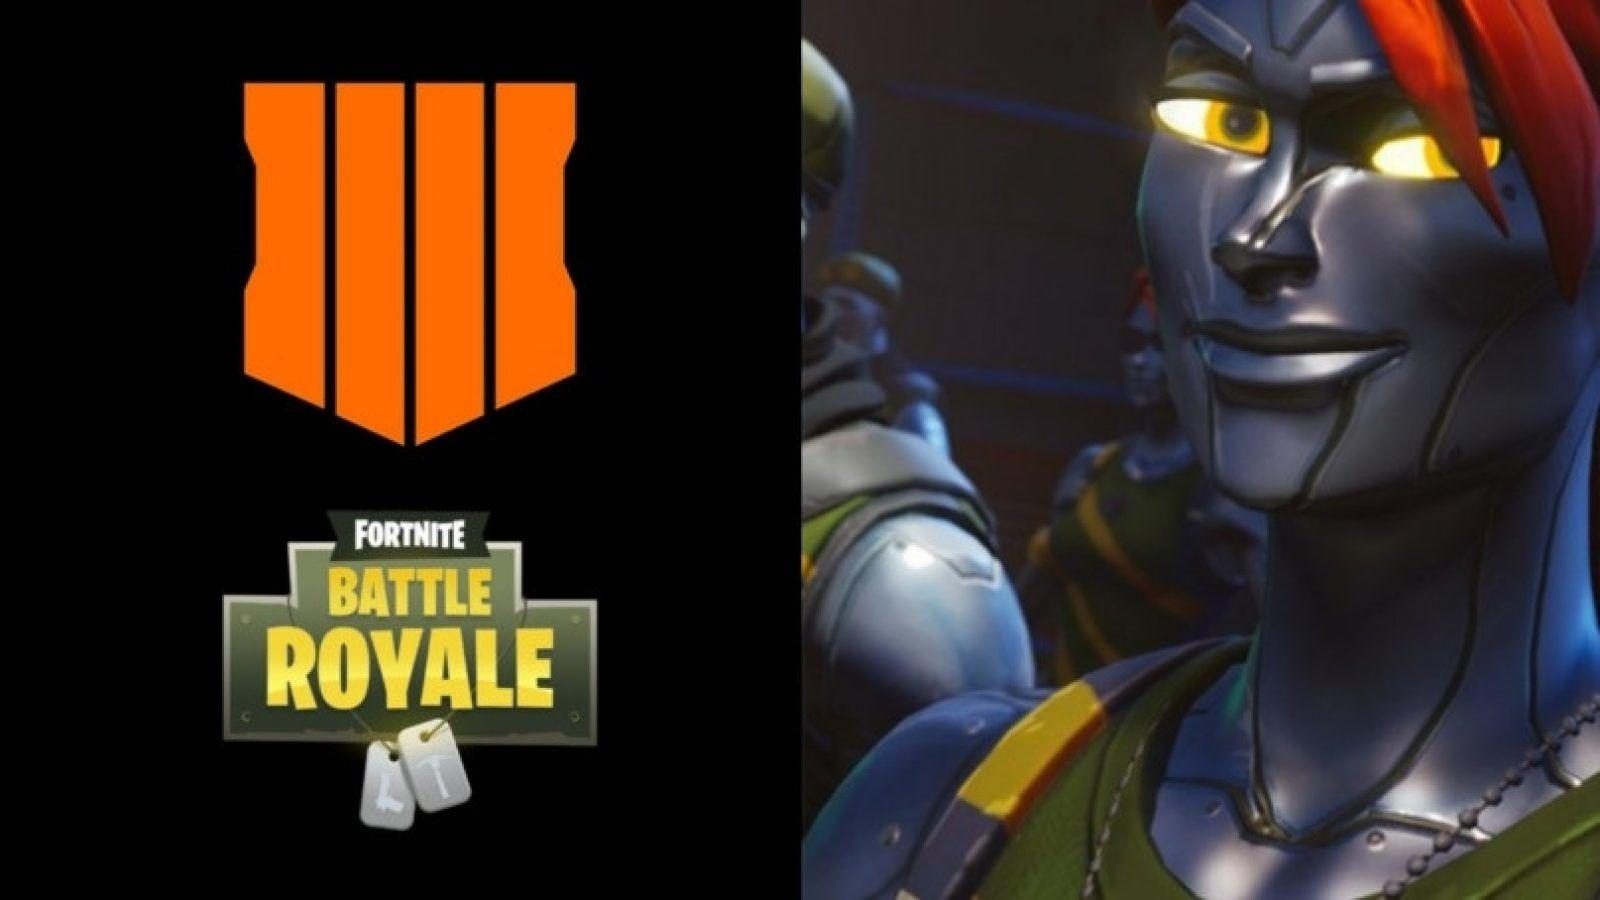 Latest Image Tweeted By Fortnite Contains a Potential Teaser for CoD ...